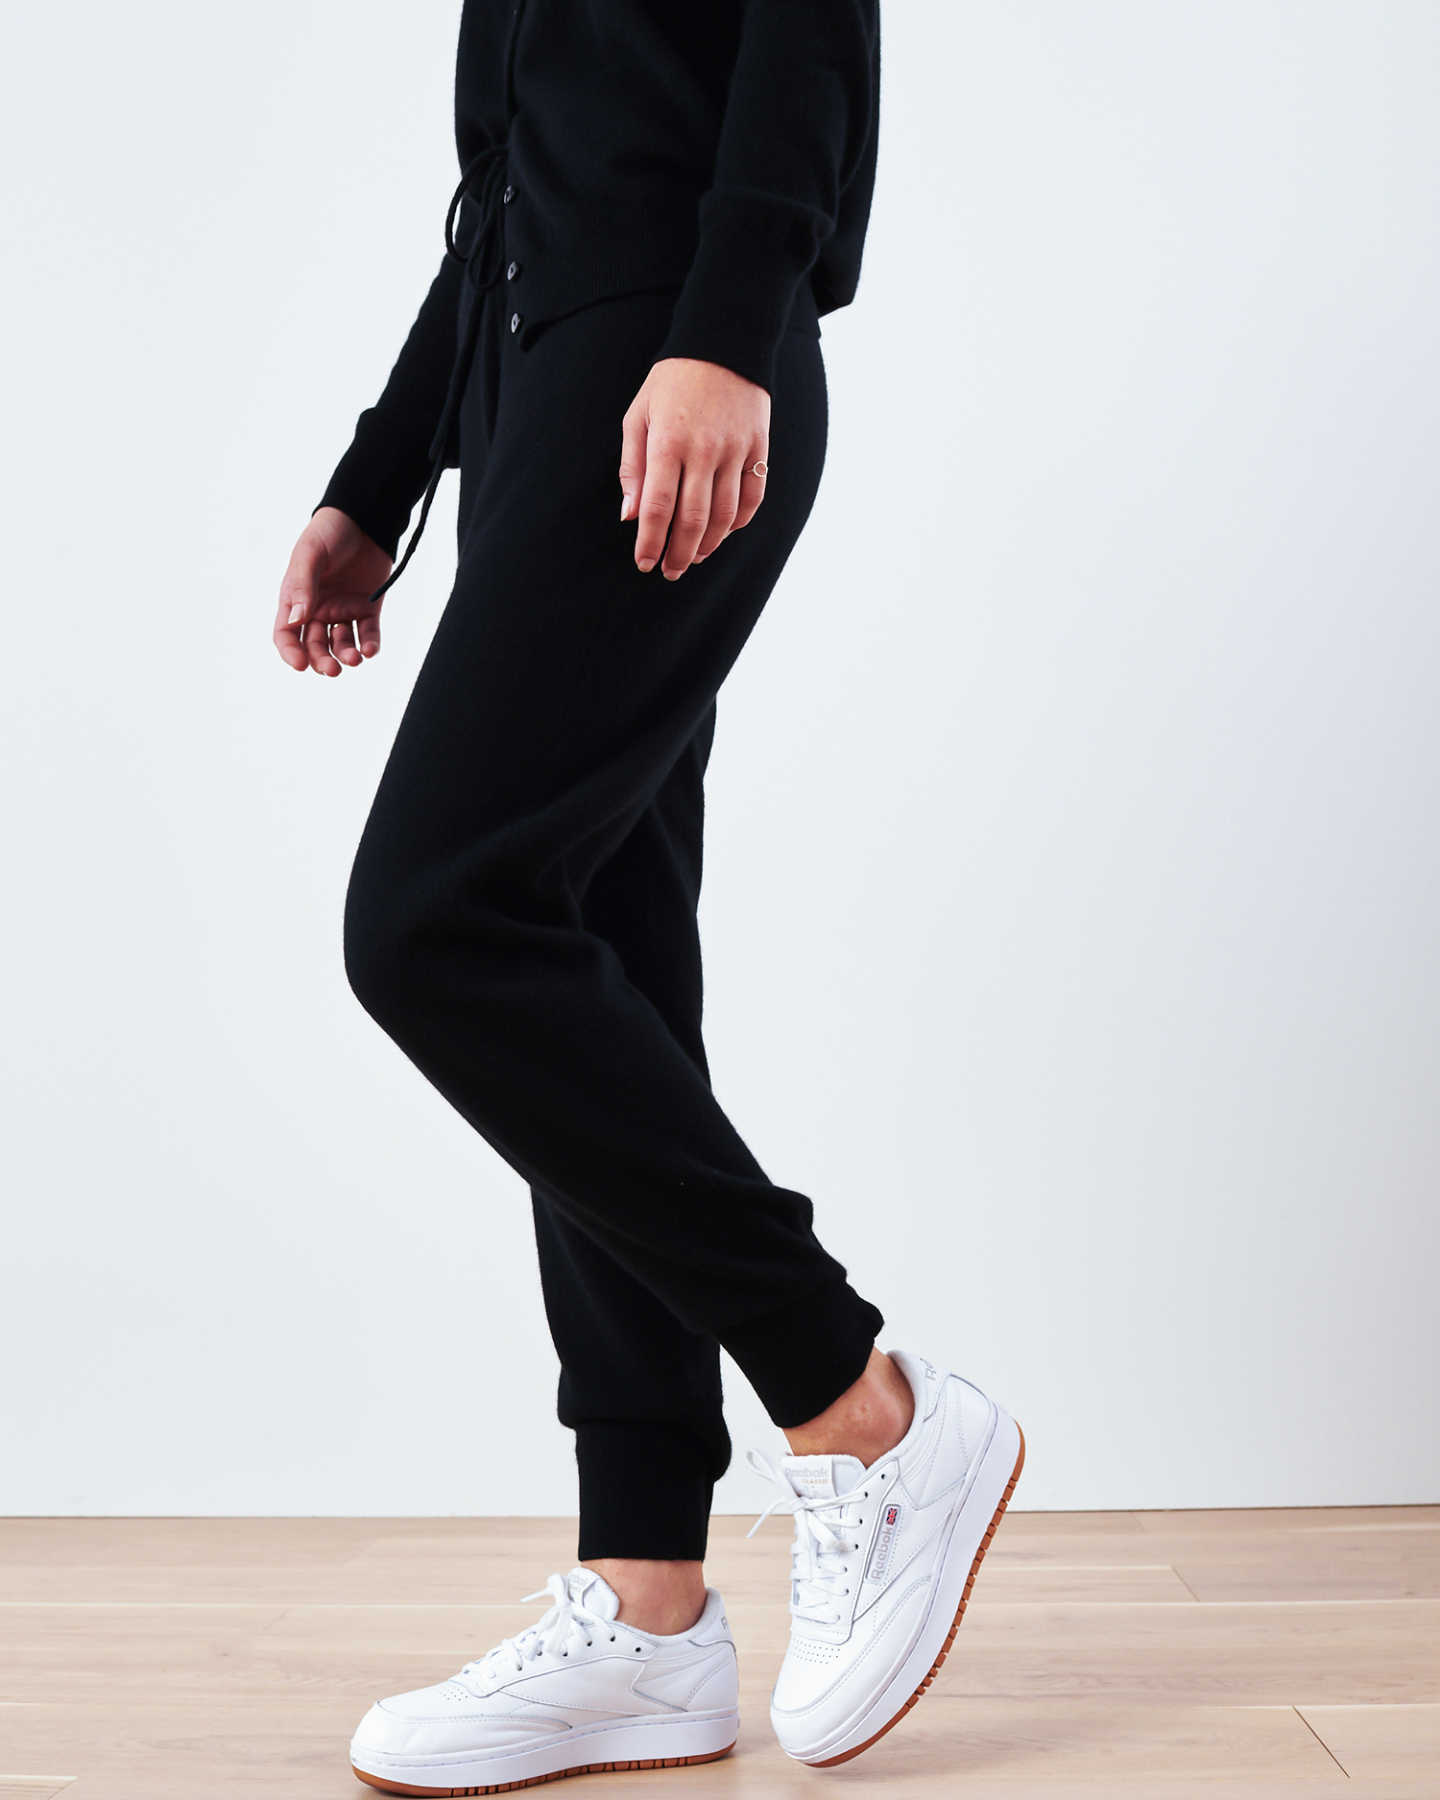 Woman wearing black cashmere sweatpants & cashmere joggers and cardigan